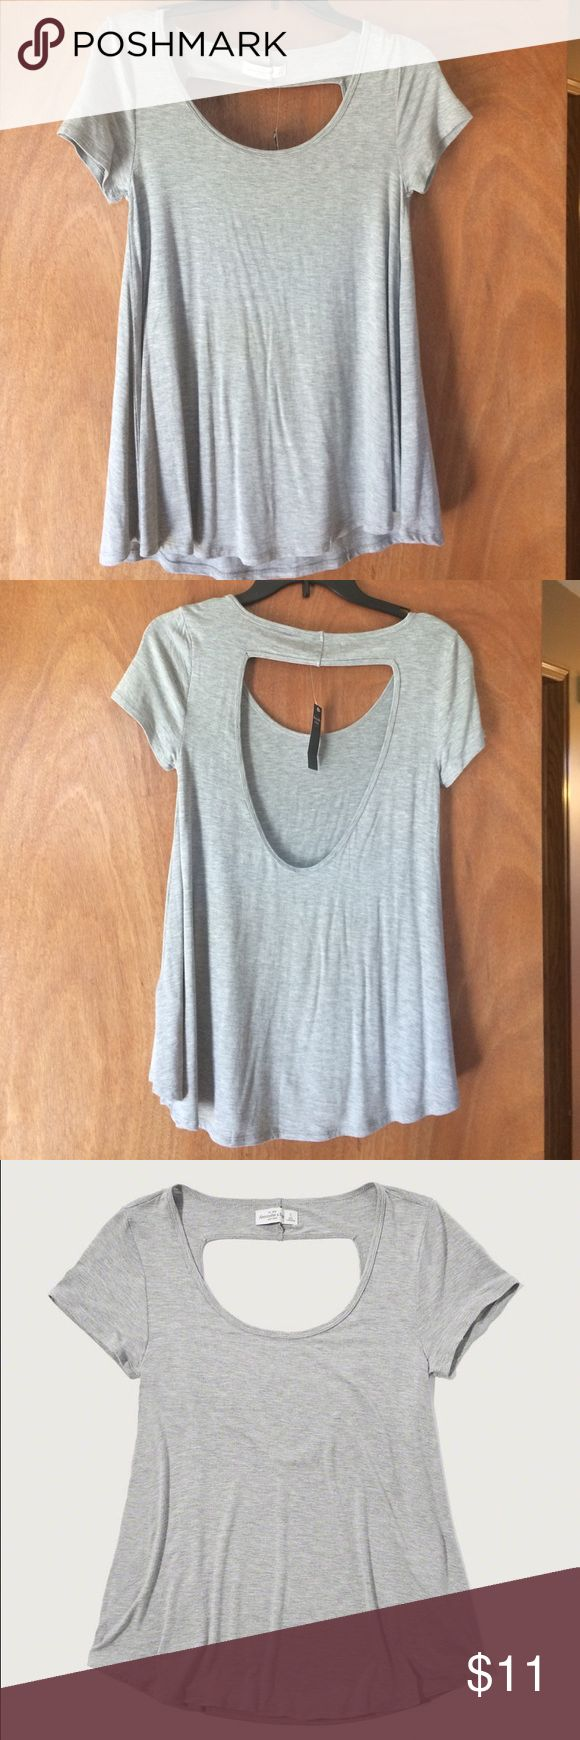 Brand new Abercrombie cute open back swing tee New from Abercrombie & Fitch - this cute grey swing tee is perfect for working out or going out! I have it for sale in size Small and X-Small Abercrombie & Fitch Tops